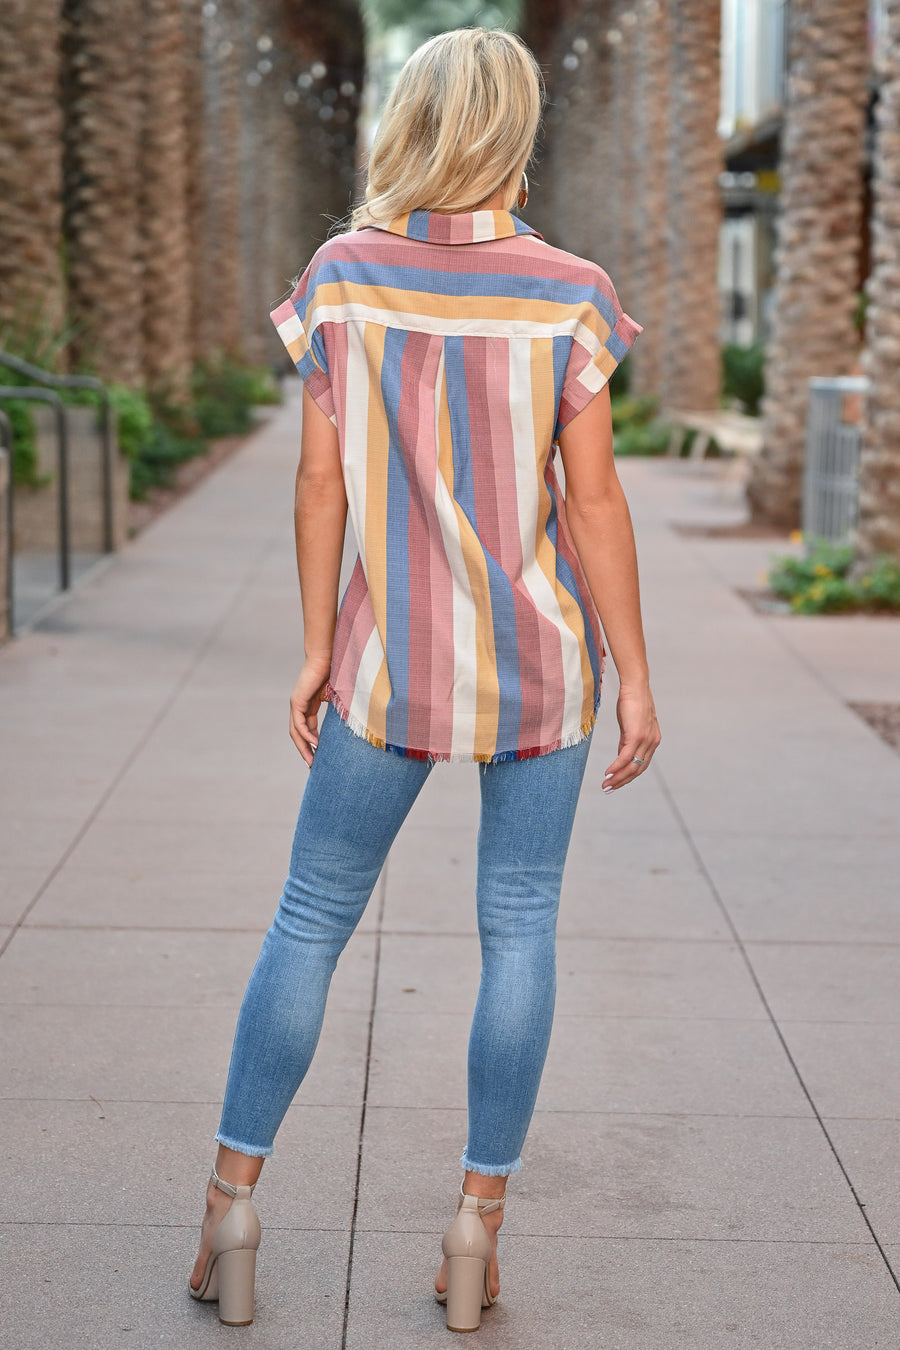 Full of Heart Button Down Top - Multi womens trendy striped collared short sleeve top closet candy front